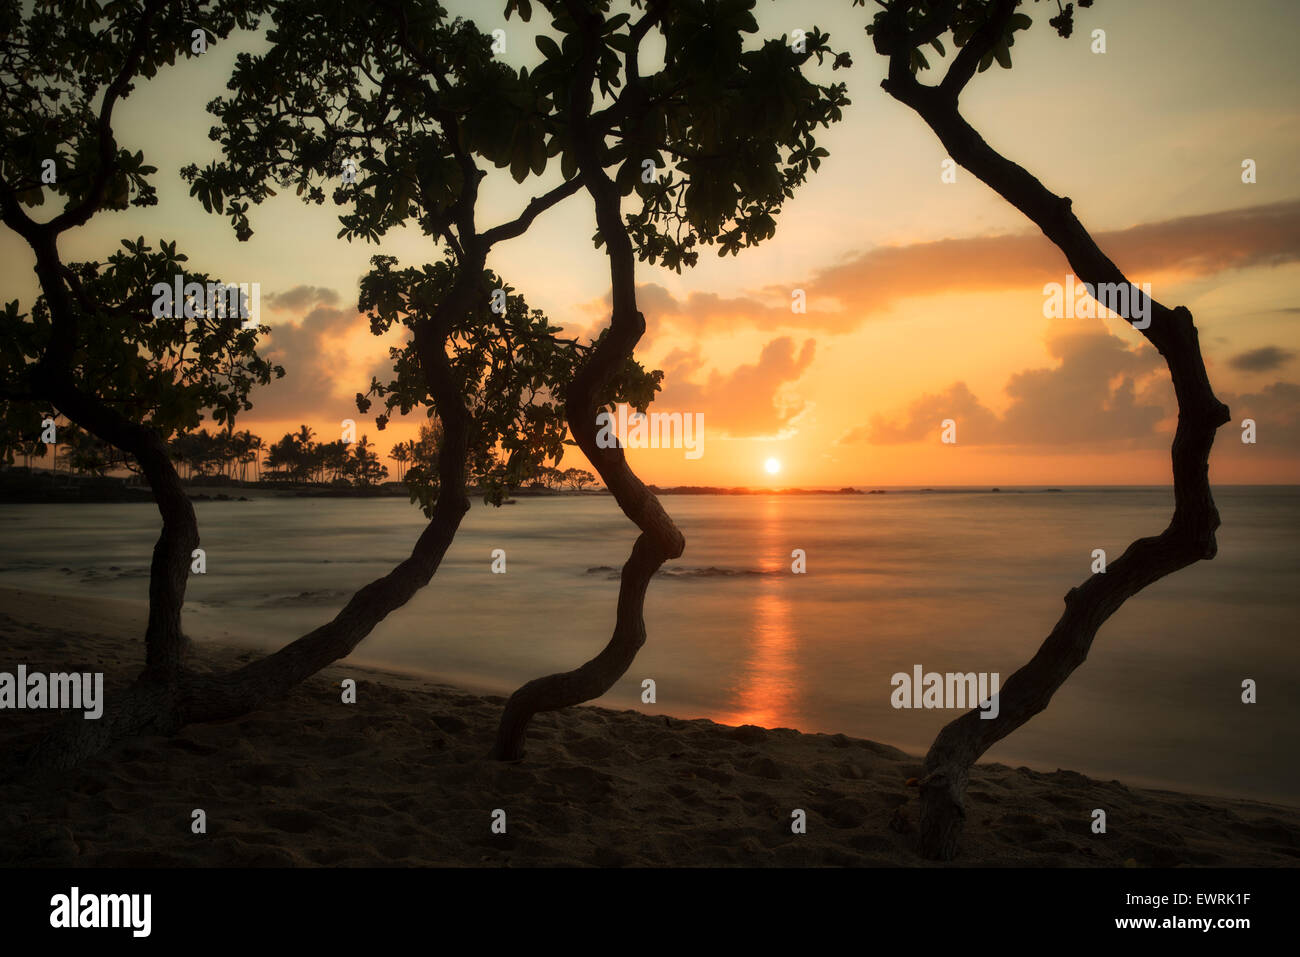 Sunset through trees on the Kohala Coast. Hawaii, The Big Island. - Stock Image